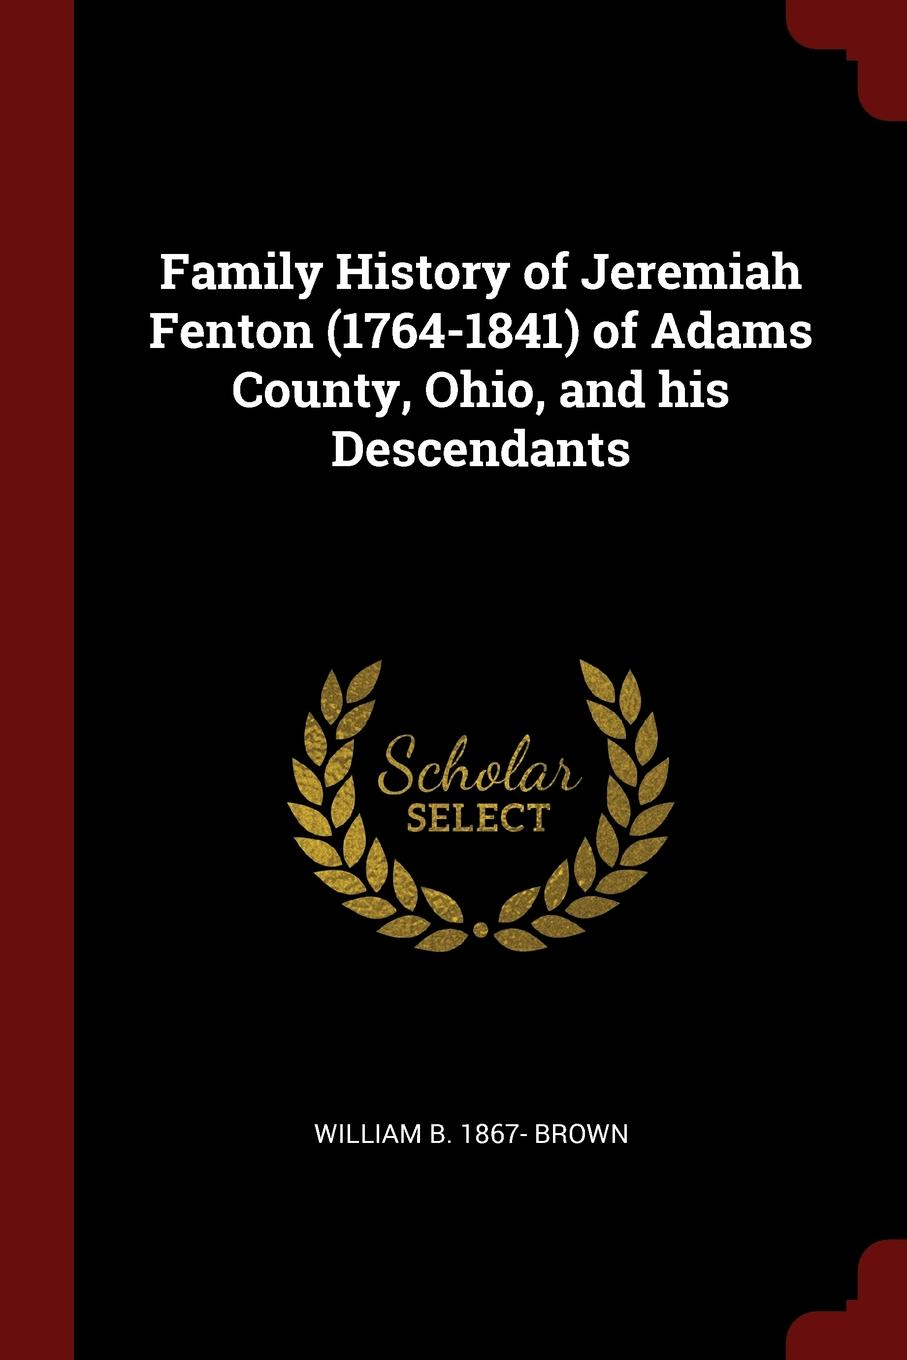 William B. 1867- Brown Family History of Jeremiah Fenton (1764-1841) of Adams County, Ohio, and his Descendants william b 1867 brown family history of jeremiah fenton 1764 1841 of adams county ohio and his descendants